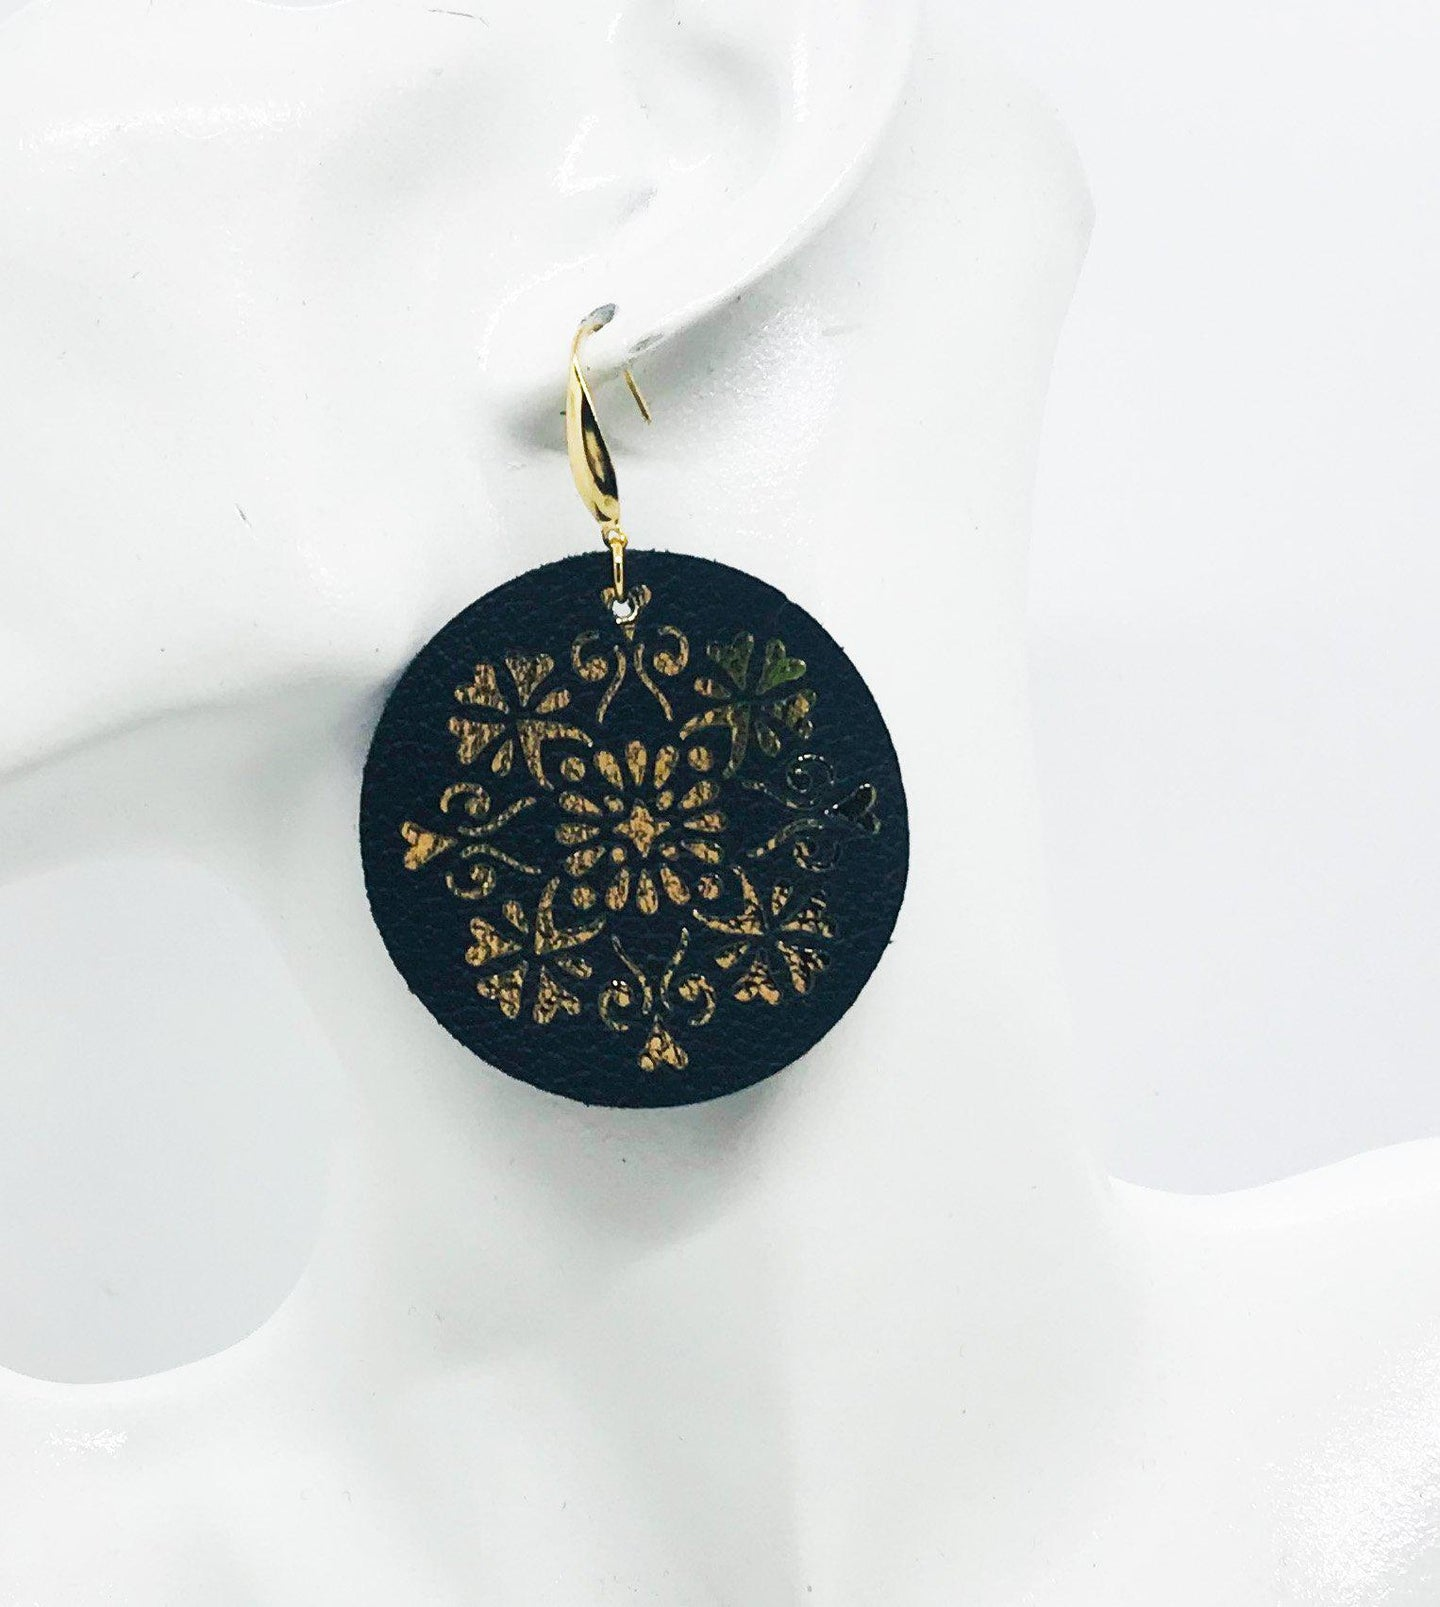 Black Leather and Metallic Gold Earrings - E19-843